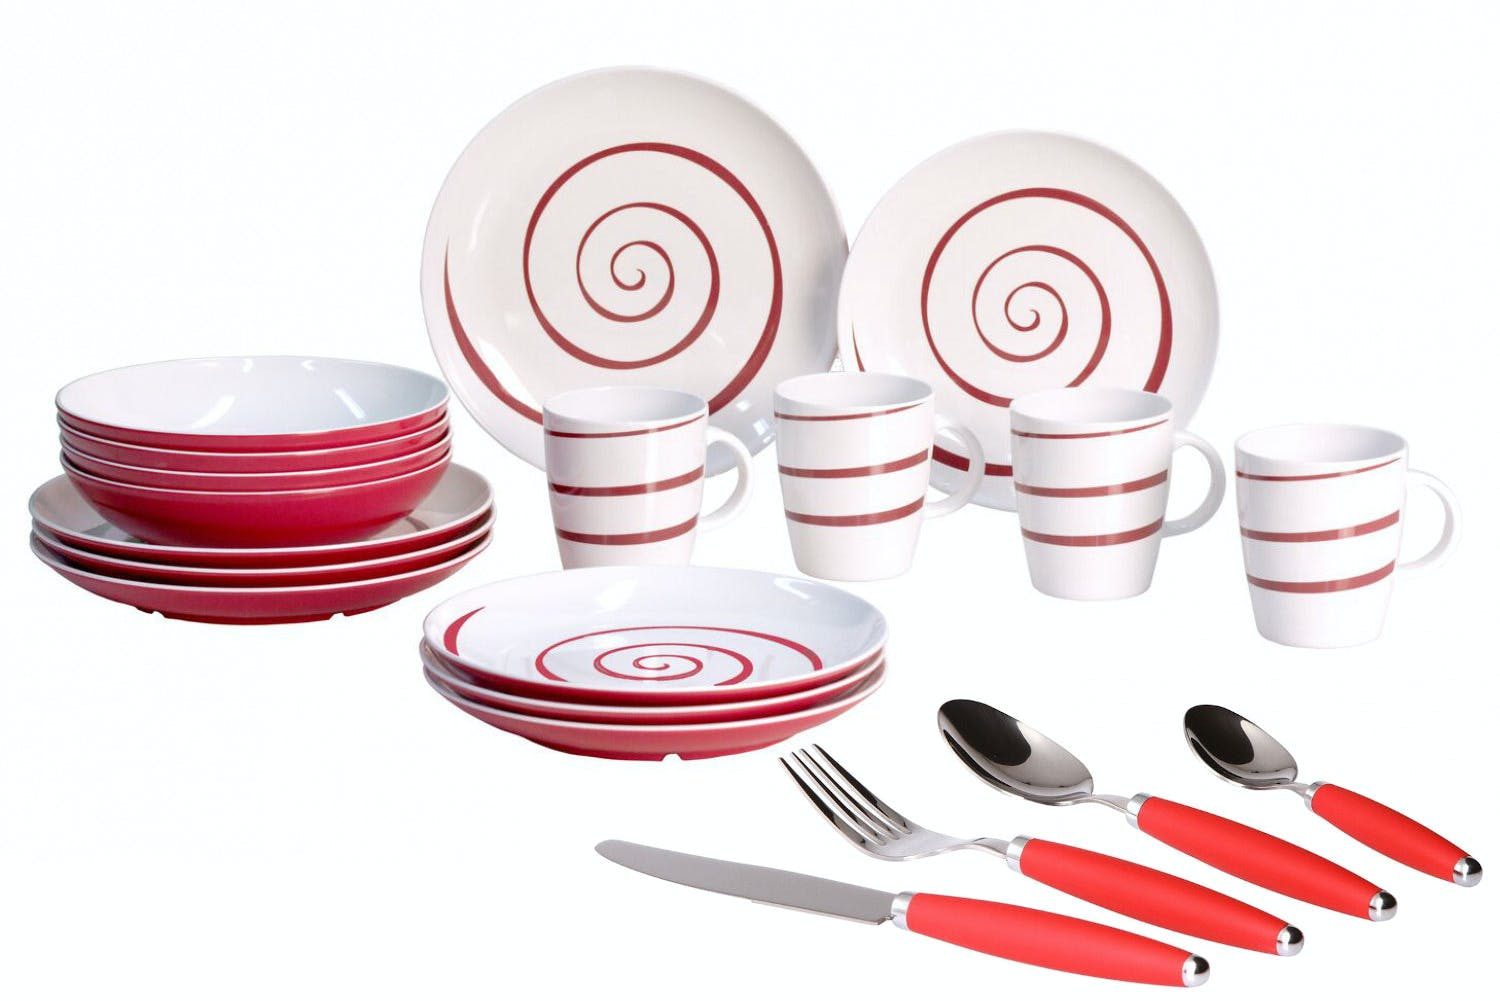 Gimex Twist Red Tableware Set with Cutlery